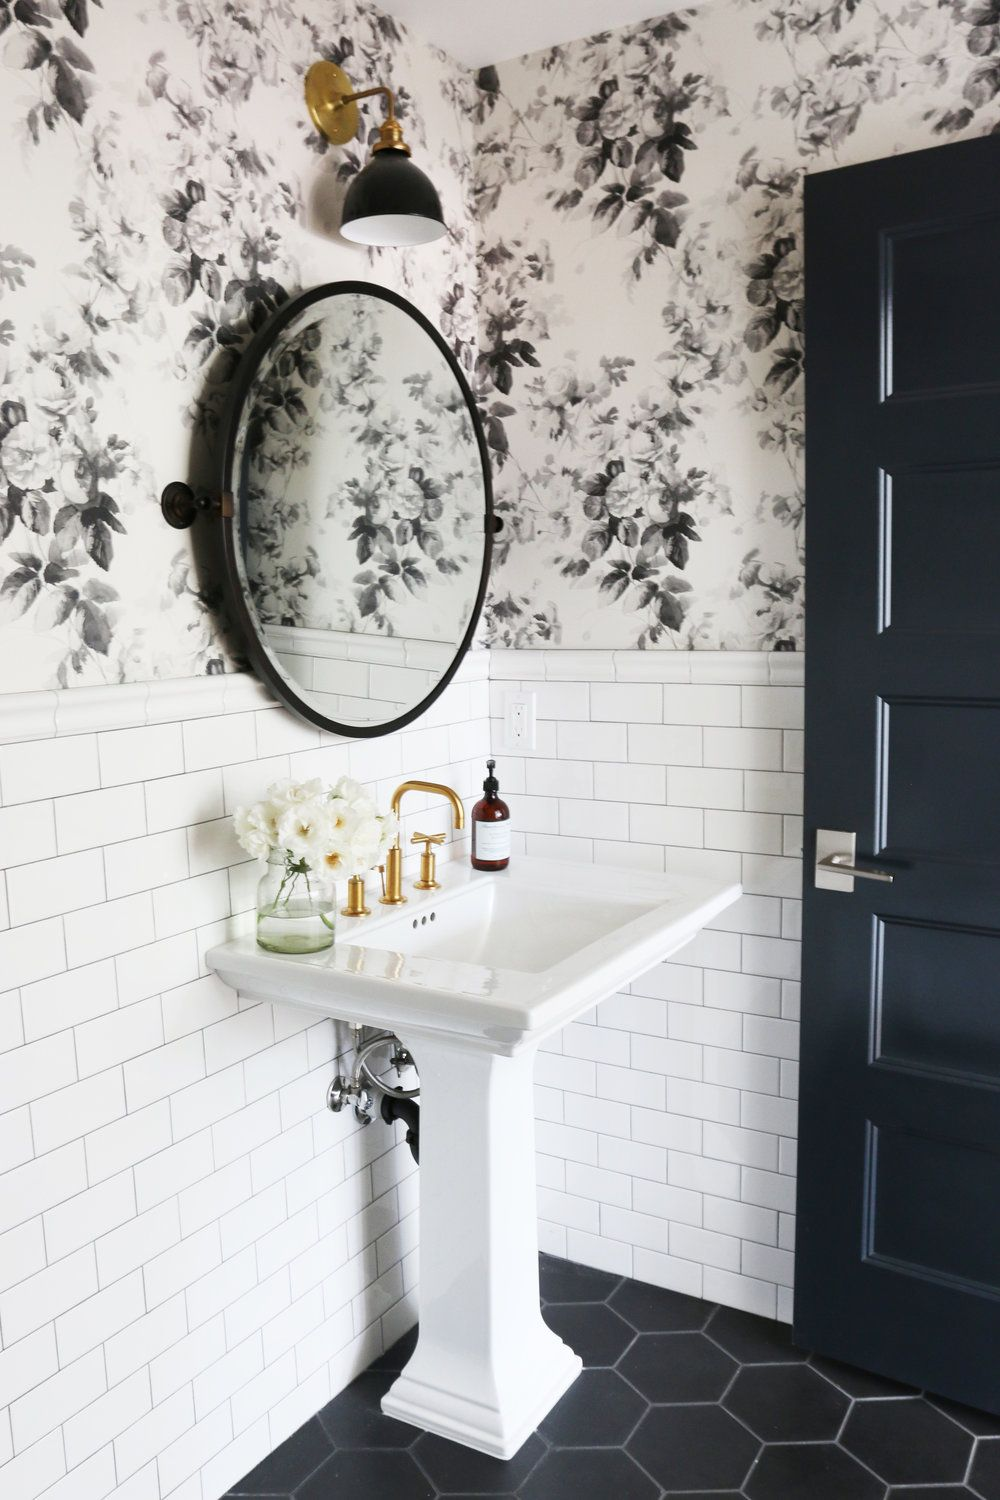 5 Tips For A Small Bathroom Bathroom Design Small Black Floor